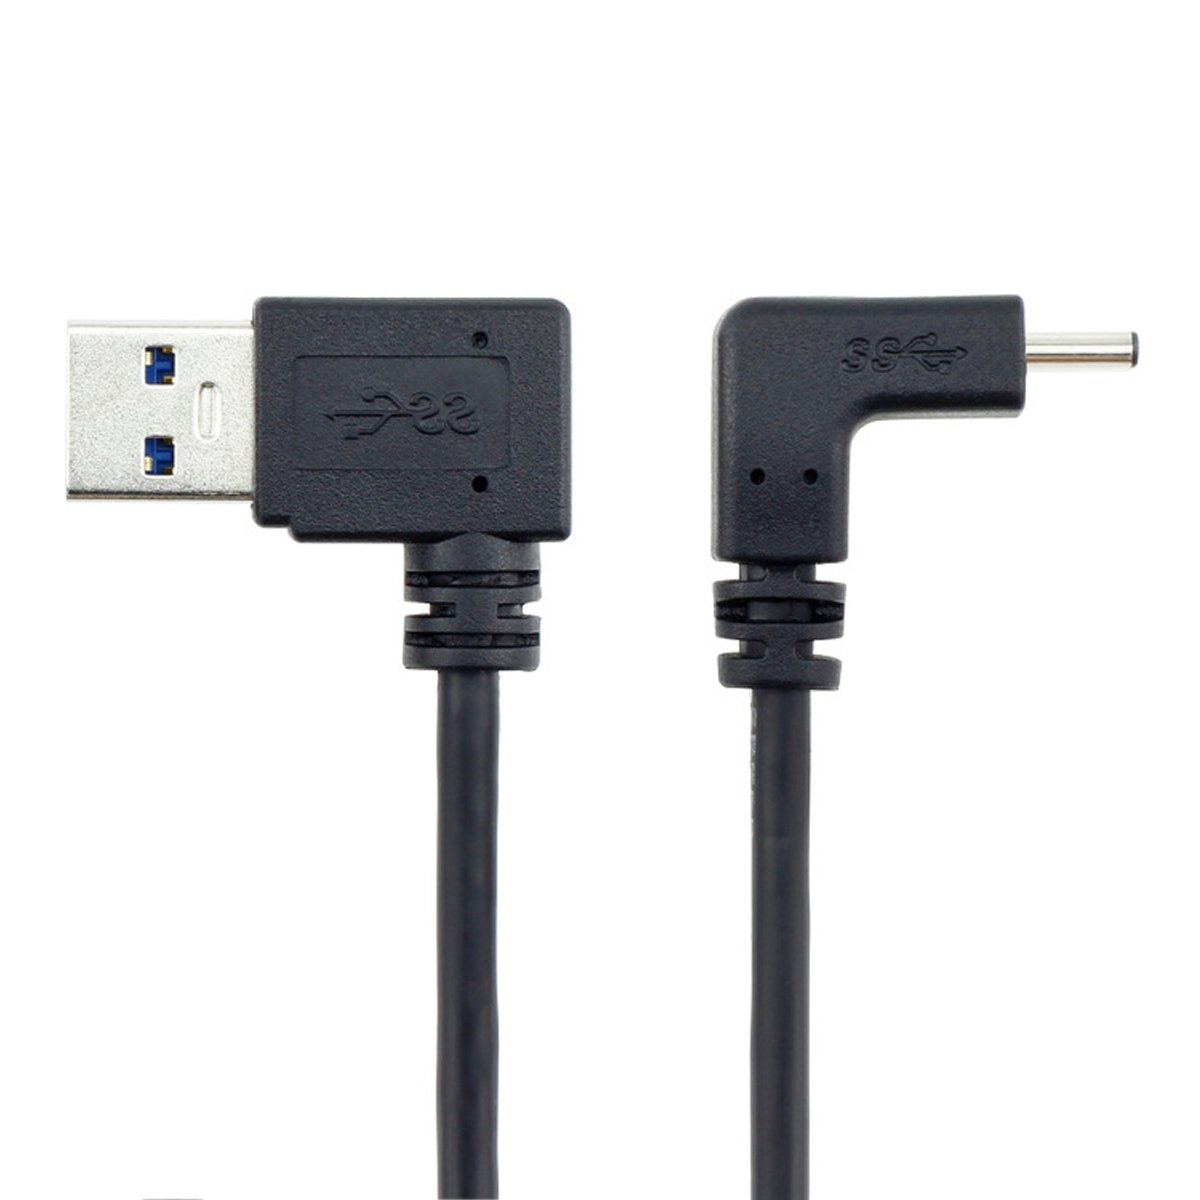 YOUKITTY 10pcs//lot 100cm USB 3.1 USB-C Up /& Down Angled to 90 Degree Left Angled A Male Data Cable for Laptop /& Tablet /& Phone